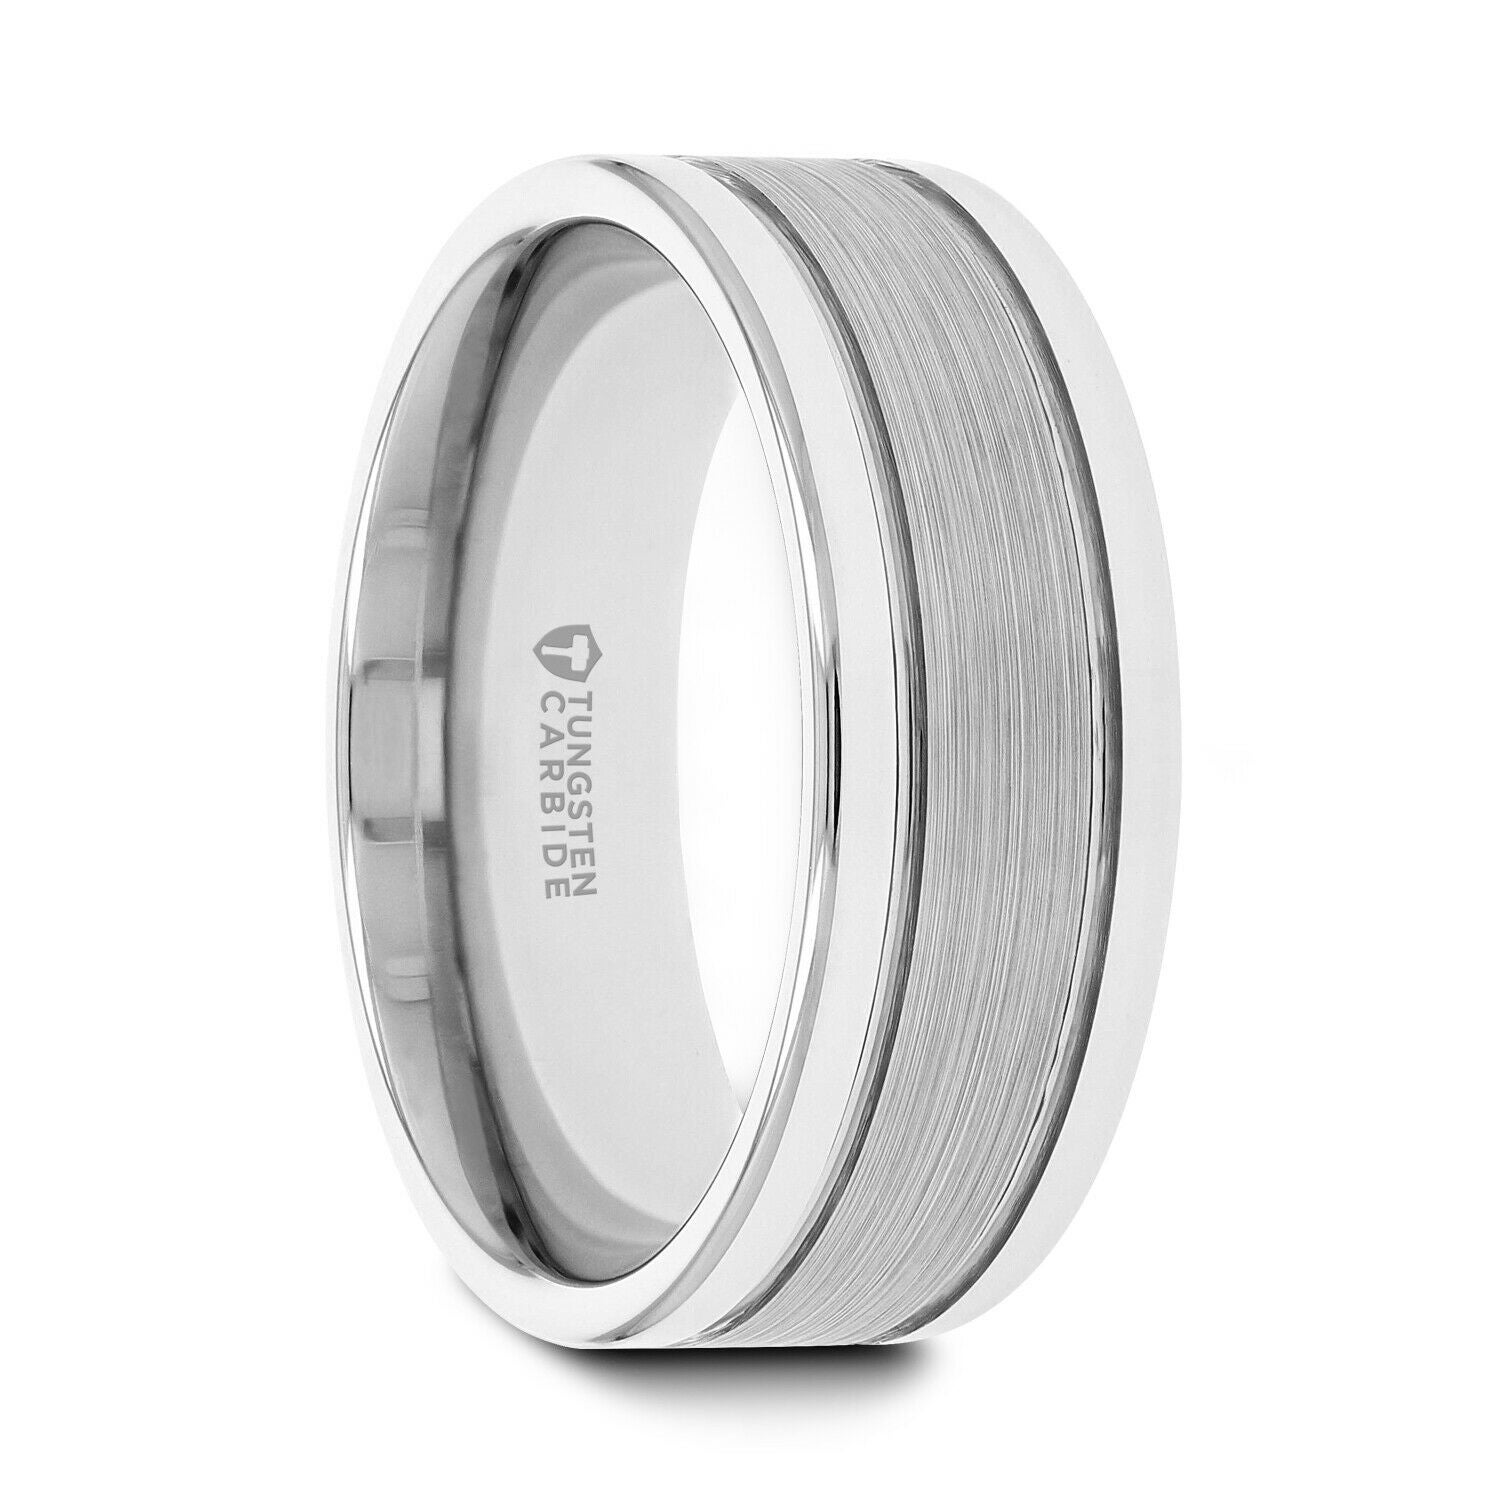 Jewelry Best Seller Cobalt Sterling Silver Inlay Satin//Polished 6mm Beveled Edge Band